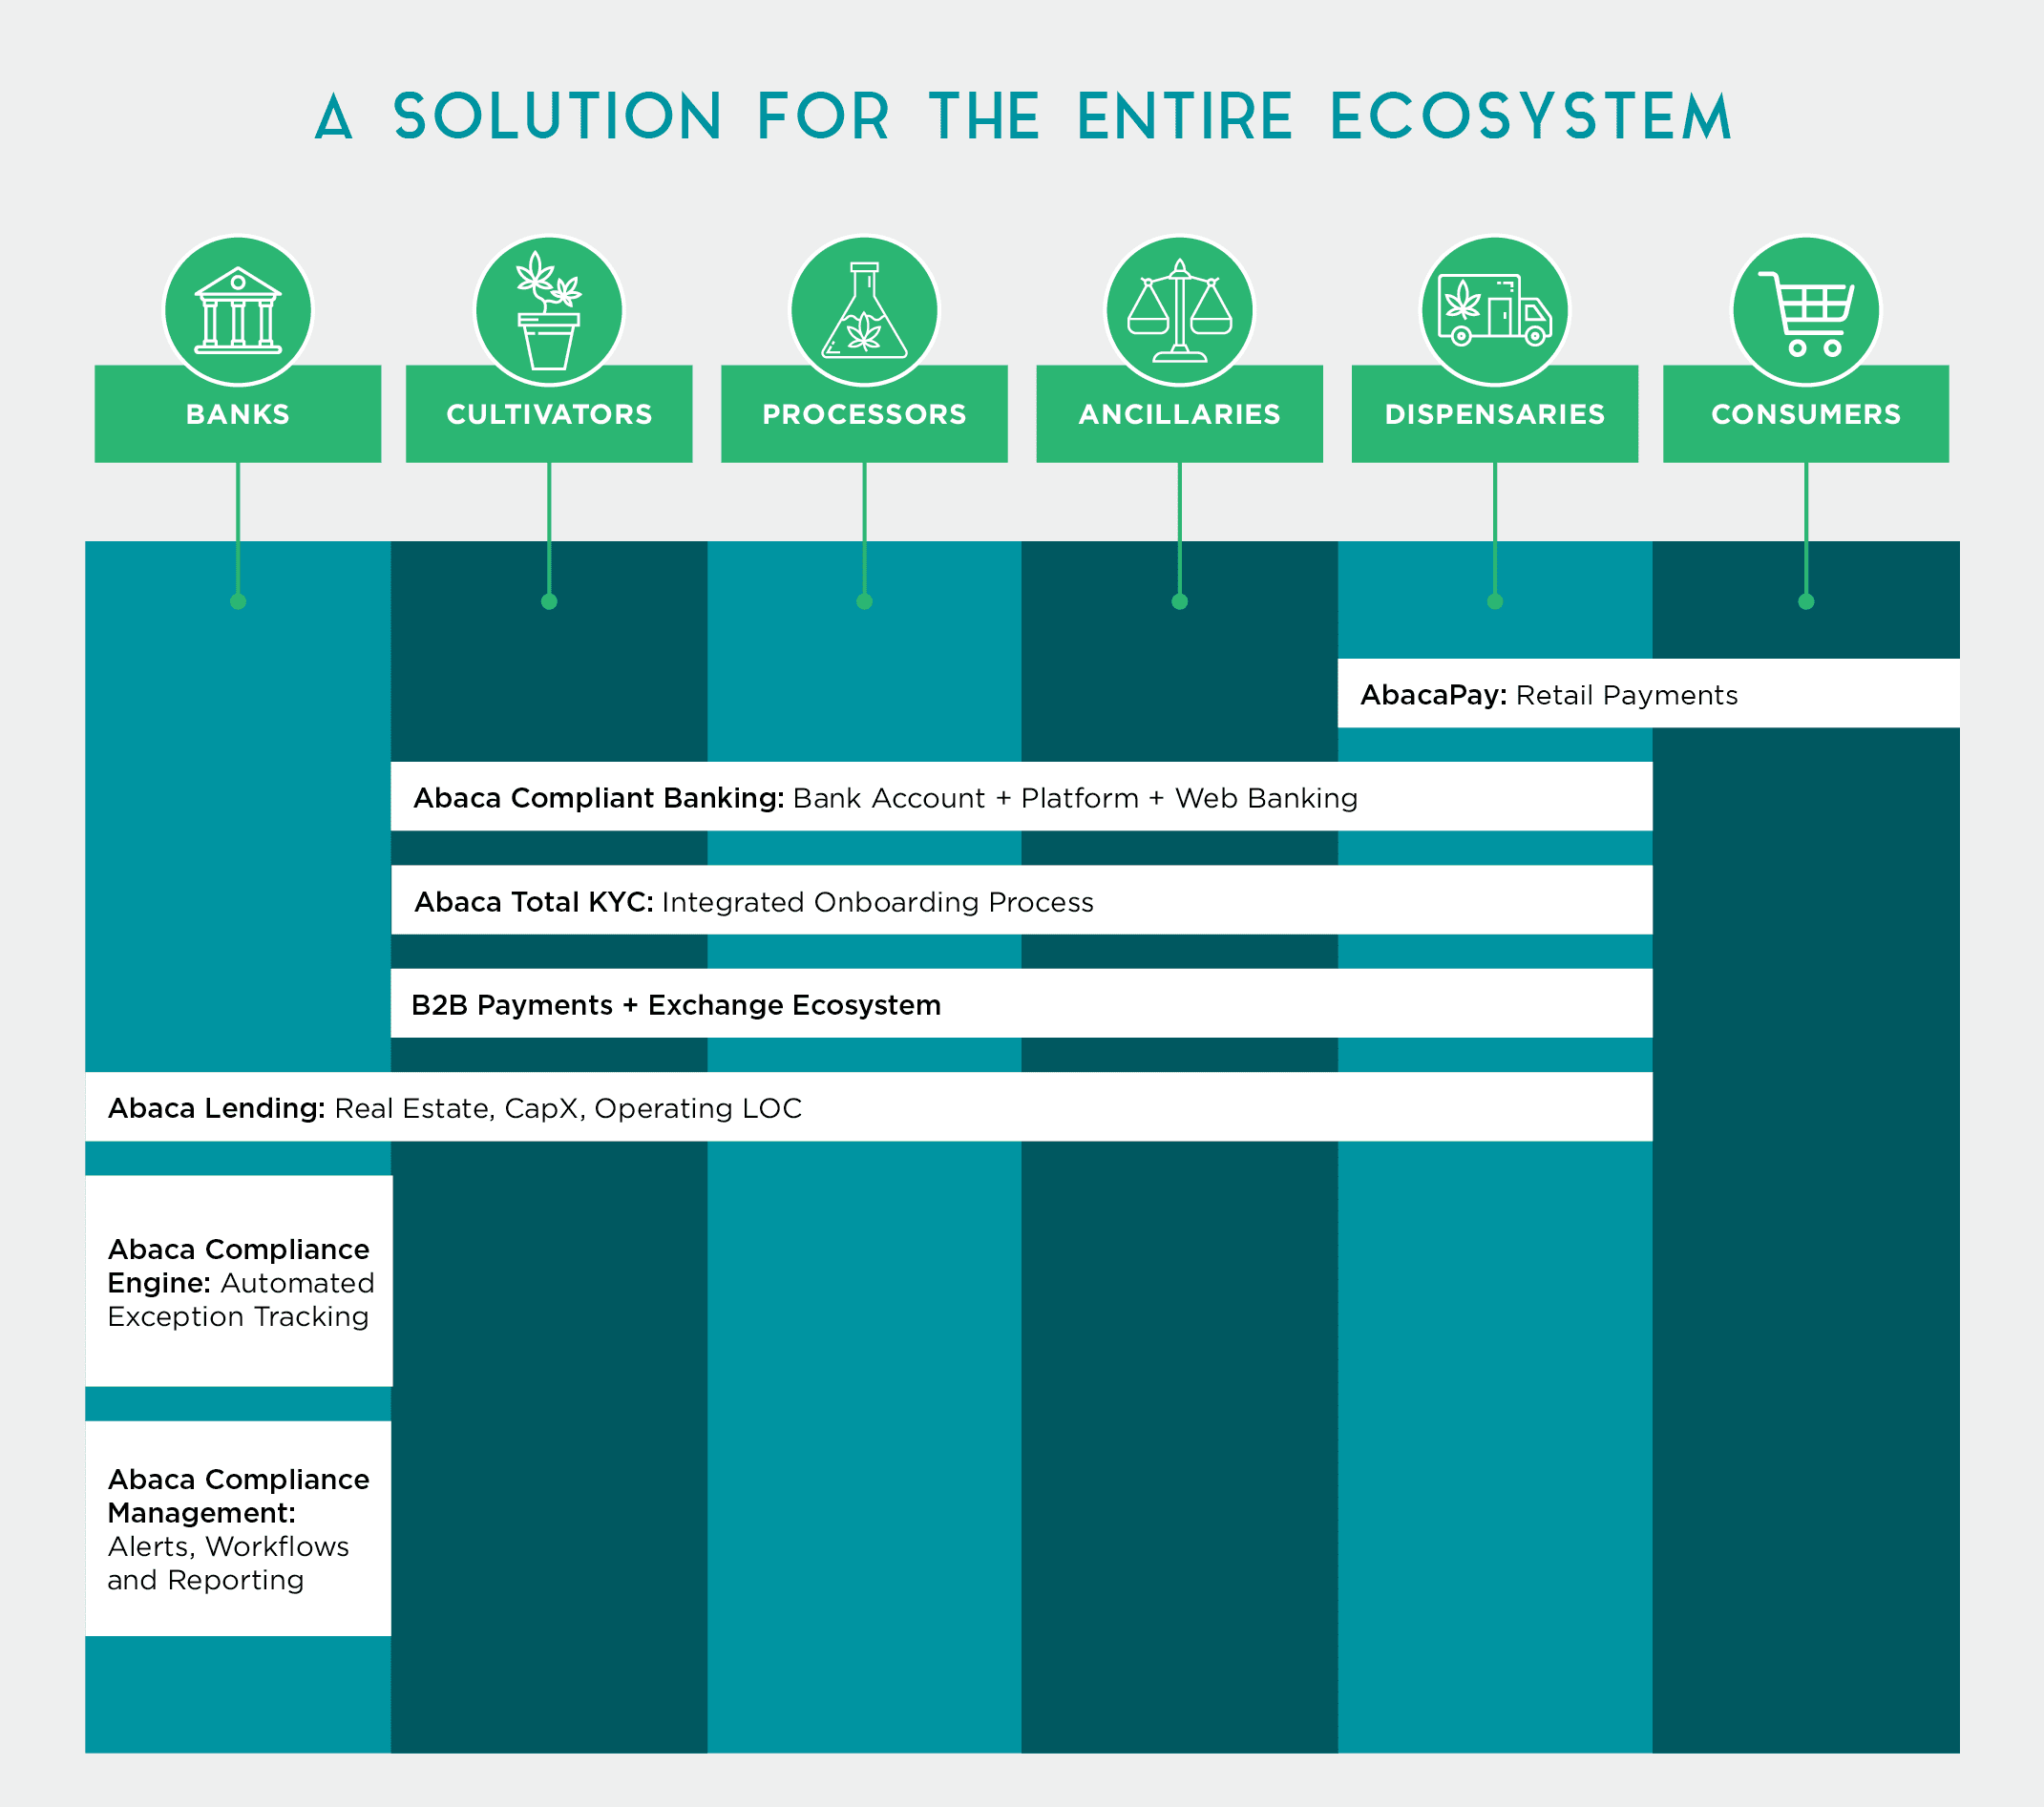 A Solution for the Entire Ecosystem - Banks, Cultivators, Processors, Ancillaries, Dispensaries, Consumers